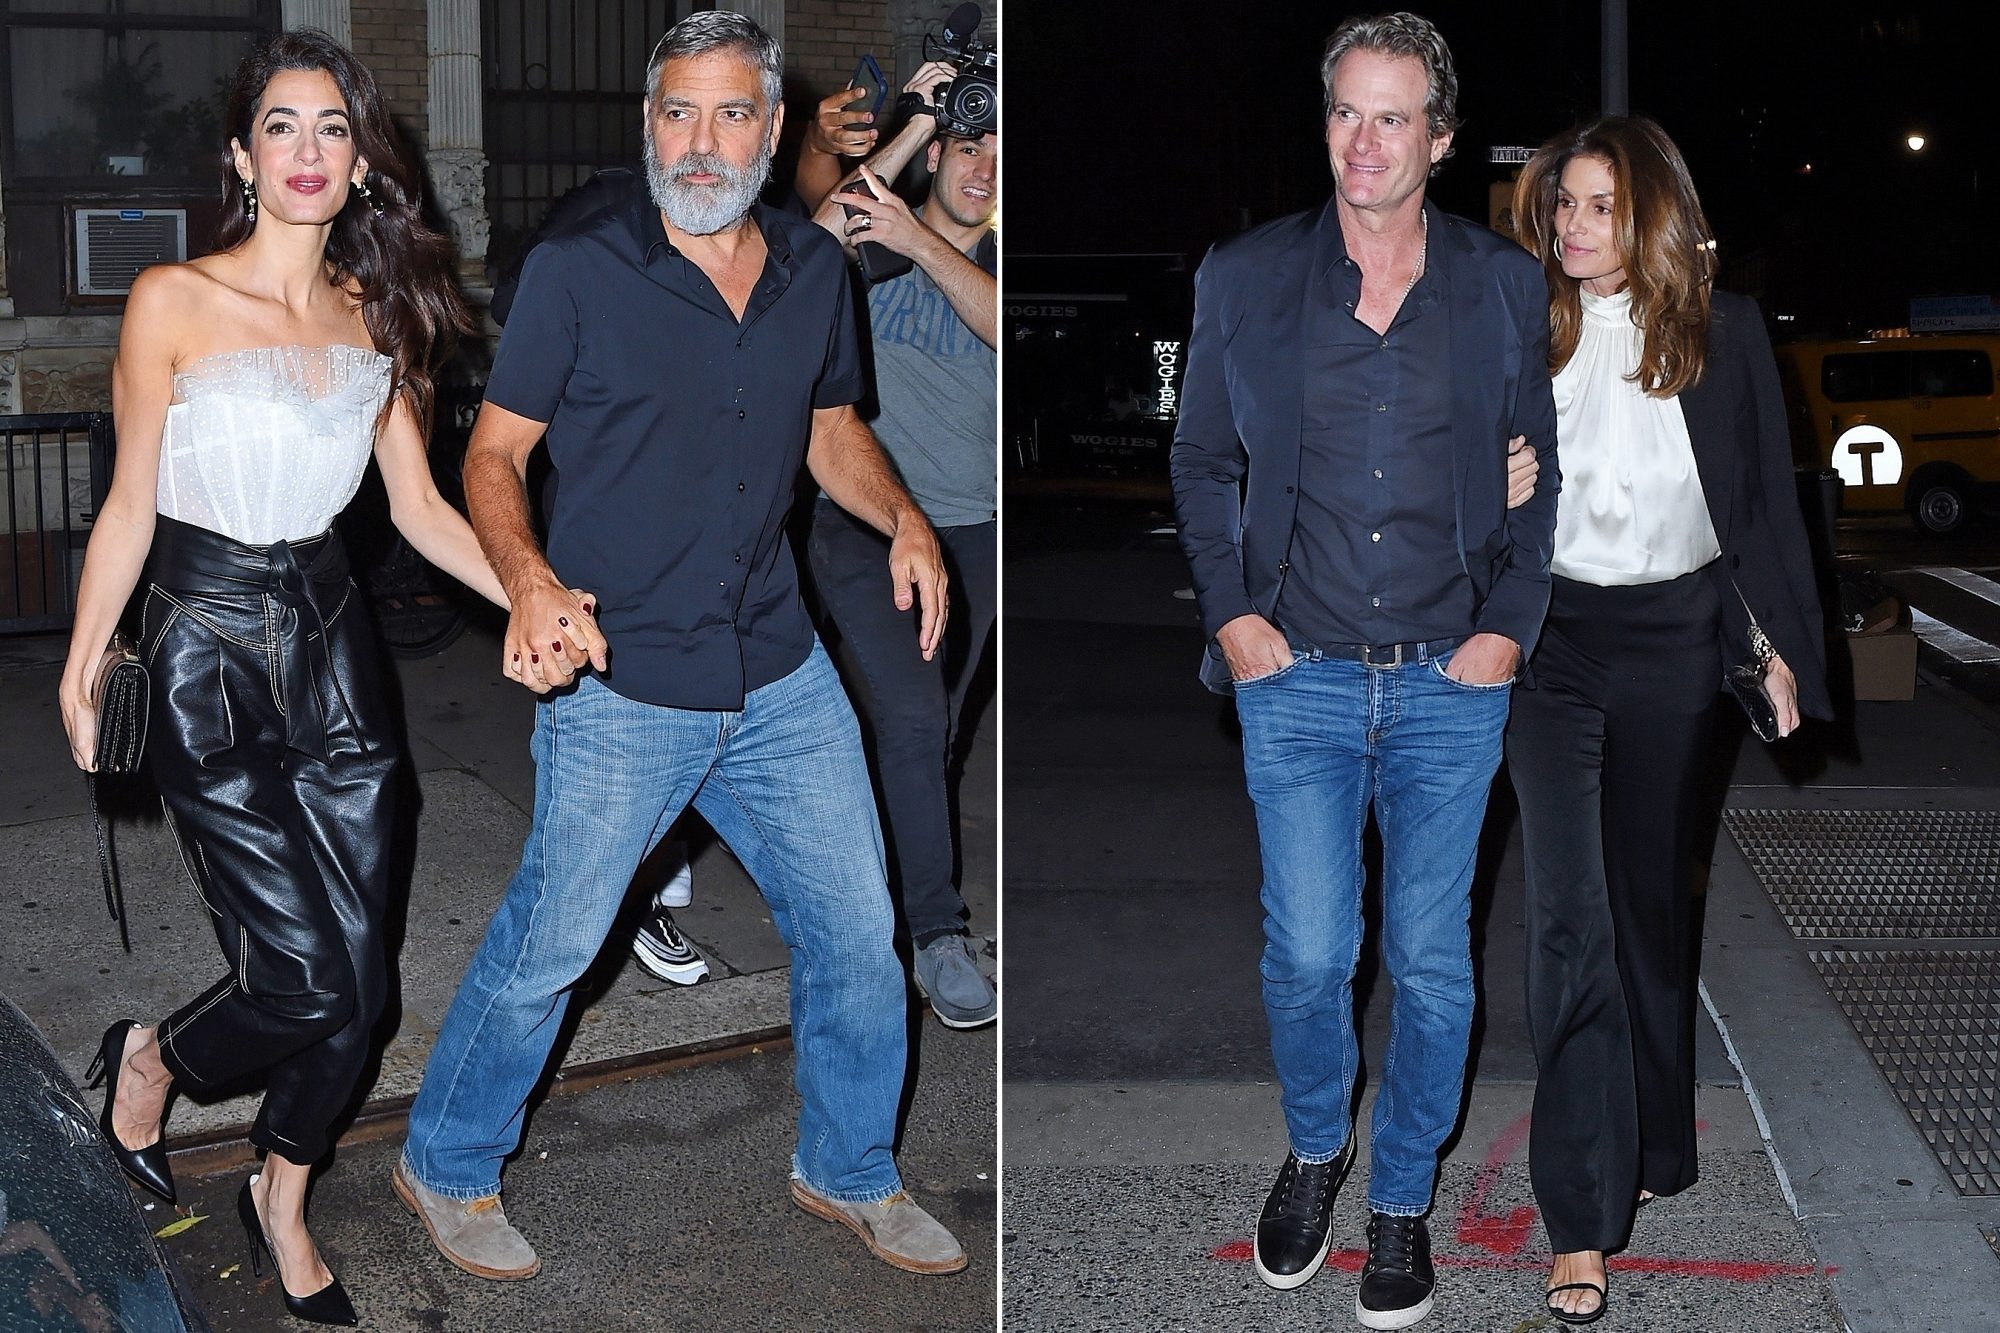 George and Amal Clooney, Cindy Crawford and Randy Gerber